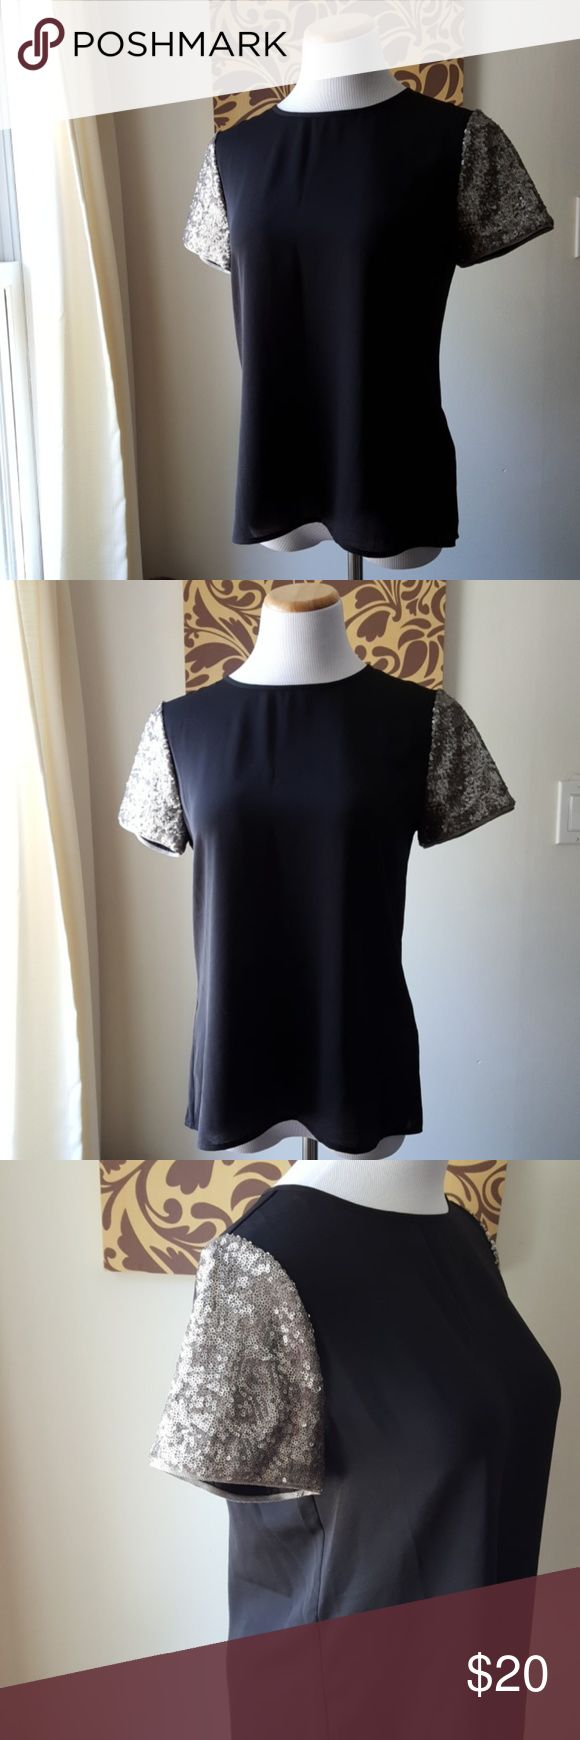 Banana Republic Heritage Sequin Sleeved Top Like new condition. No stains or stains. The shirt is a light material. Sleeves are small silver sequins. Small open detail on back. Material does not stretch. Busy measures 19 inches. Shirt meausres 24 inches from shoulder to hem line. Banana Republic Tops Tees - Short Sleeve